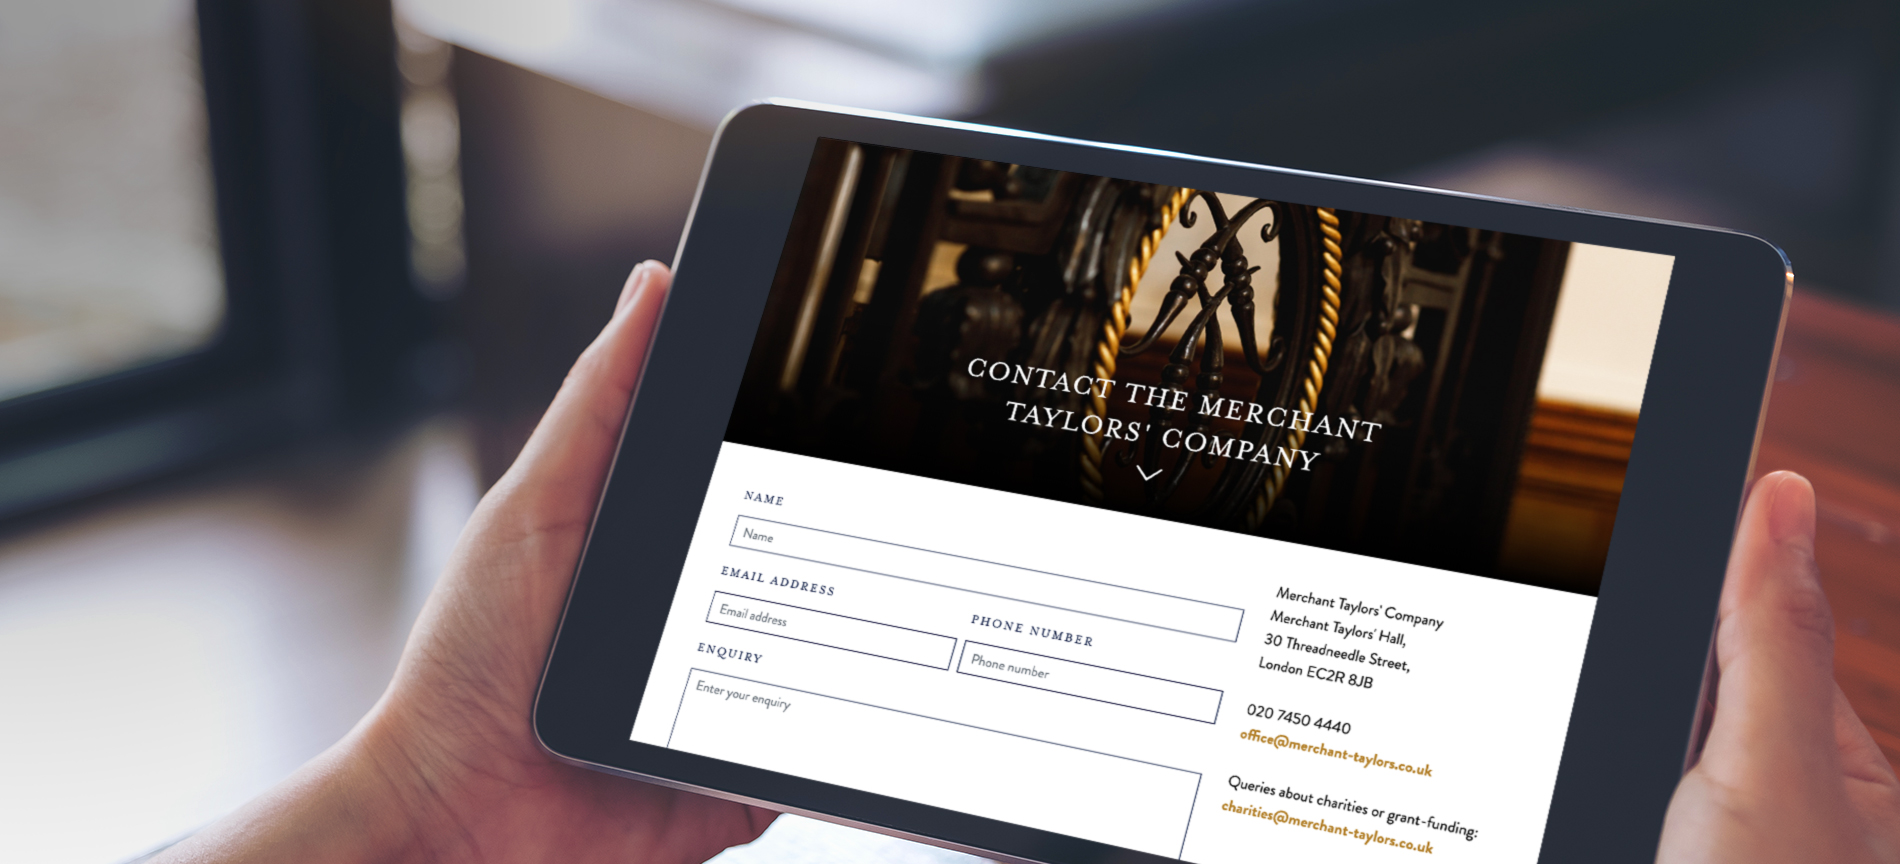 Merchant Taylors' Company Contact webpage on an iPad - desktop